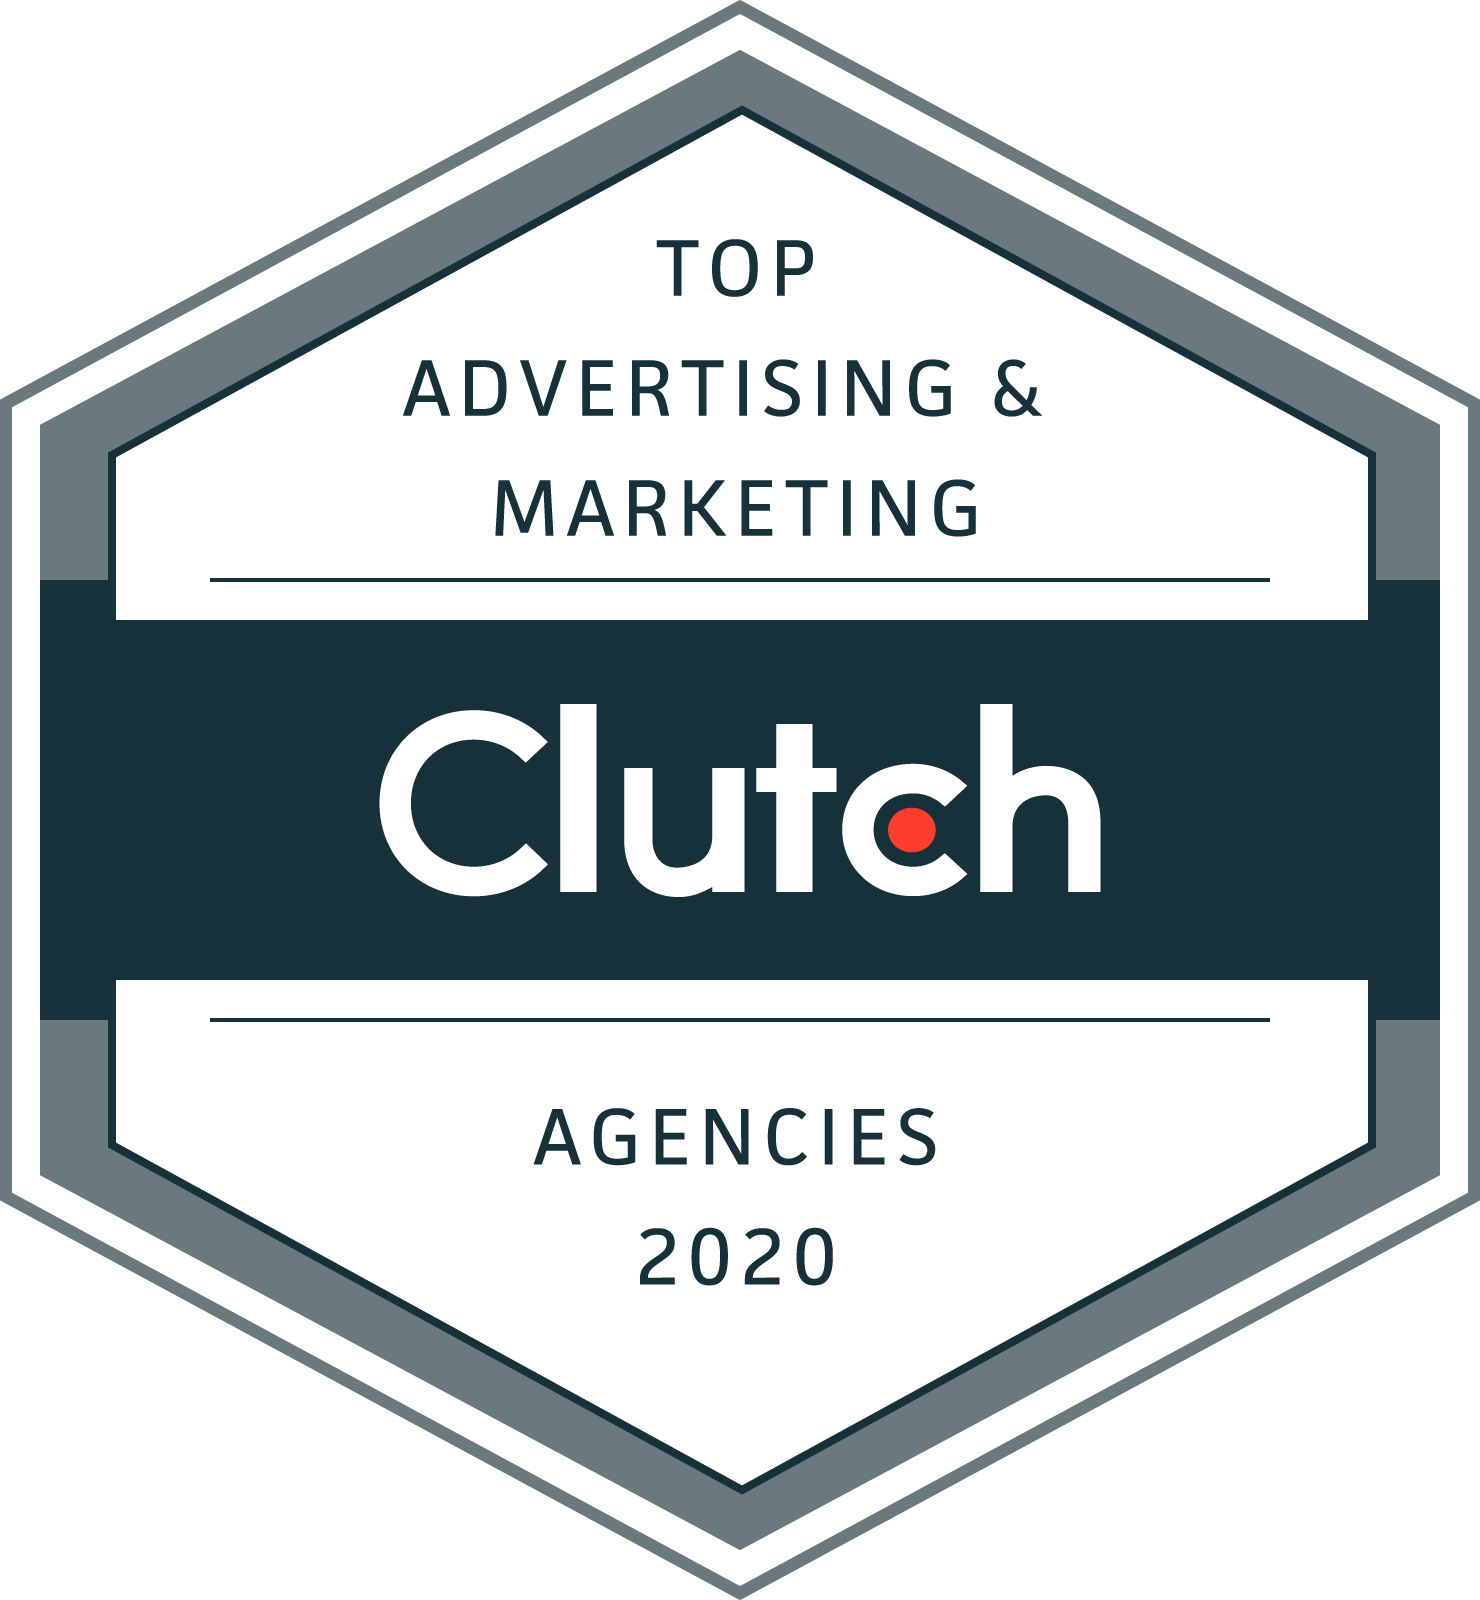 Advertising_Marketing_Agencies_2020